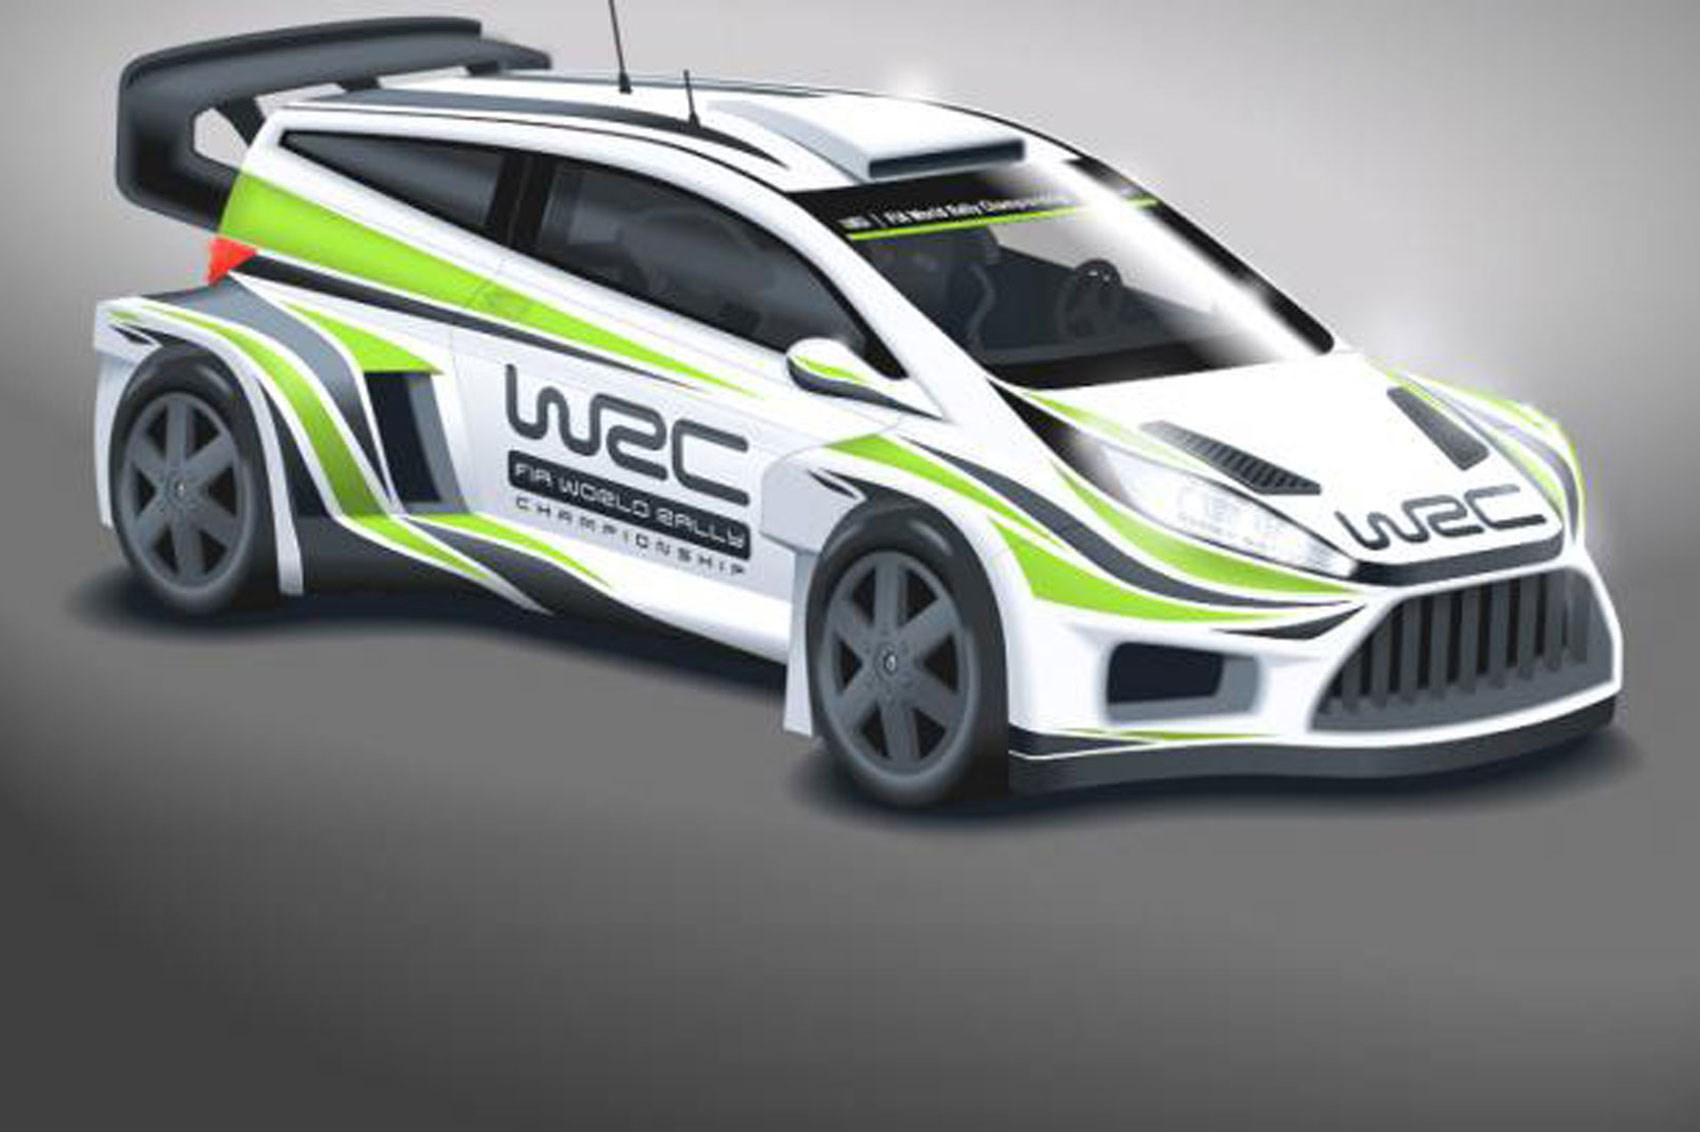 Ultrablogus  Stunning Wild New Look For Wrc Cars In  By Car Magazine With Engaging Wrc Cars Will Get Wider Bodies Bigger Wings And More Power For  With Charming Land Rover Freelander  Interior Also Hyundai I Grand Images Interior In Addition Peterbilt  Interior And Bmw M Interior As Well As Gmc Topkick Interior Additionally  Peterbilt  Interior From Carmagazinecouk With Ultrablogus  Engaging Wild New Look For Wrc Cars In  By Car Magazine With Charming Wrc Cars Will Get Wider Bodies Bigger Wings And More Power For  And Stunning Land Rover Freelander  Interior Also Hyundai I Grand Images Interior In Addition Peterbilt  Interior From Carmagazinecouk